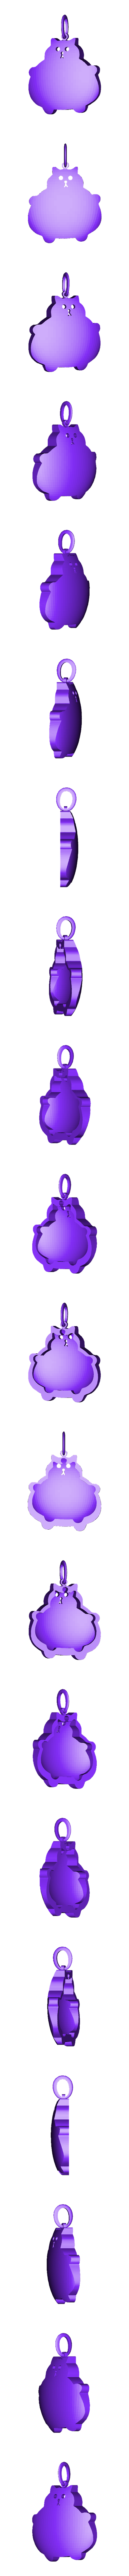 Chubby Cat.stl Download free STL file  Chubby cat • 3D printer model, GENNADI3313